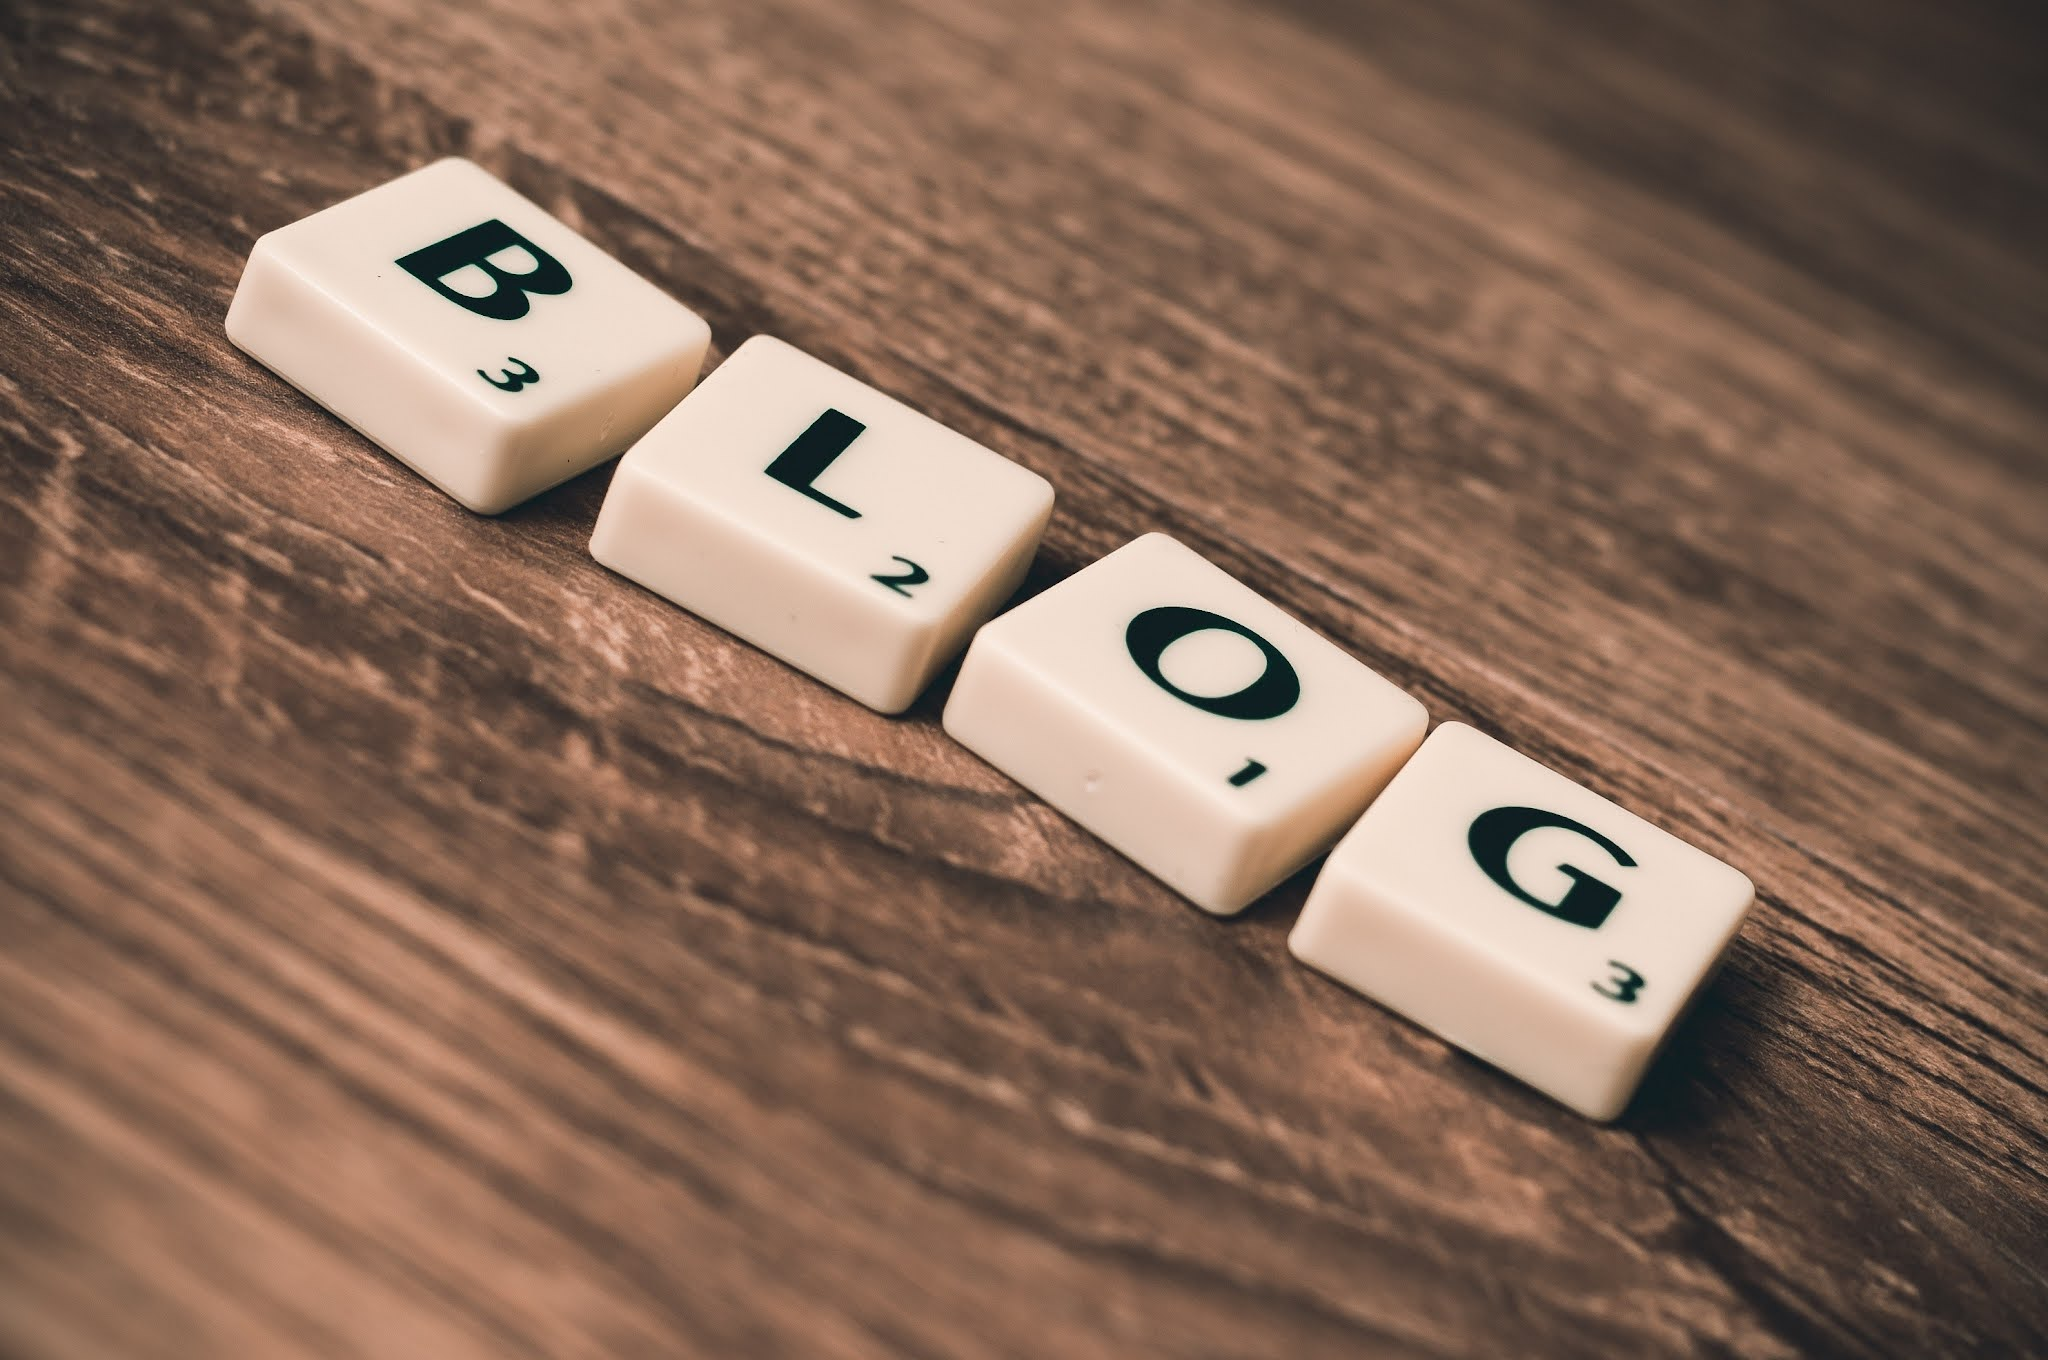 """<p>Which blog site is best for beginners? This is a question you will always ask when you first start blogging. While you want to earn a decent amount blogging, you also want to be financially able to do so.</p><p>Making money online via blogs is easy. The cost of starting a blog can be extremely low. Website hosting is not required. All you need is a domain and it is very affordable. Ad space and affiliate products can be sold to help you make your blog a true profit-maker.</p><p>It will take some time to become a blogger who makes a living writing blogs. Which blog site is best for beginners? It all depends on how much time and effort you put into building and marketing your blog.</p><h2 data-original-attrs='{""""style"""":""""margin-bottom: .0001pt;""""}'>Which blog site is best for beginners?</h2><p>Which blog site is best for beginners? This is a question you will only be able to answer depending on the blog you create. You can use an existing website to draw visitors, and then add a blog for free to promote it.</p><p>Although you can spend millions or even billions of dollars to drive traffic to your website, it all begins with one blog.</p><p>If you're just starting out and have a blog you wish to keep up to date, you will need to find a hosting company that will offer a free site. This is the first step in making money blogging. First, you need to find a host with ads. Next, you need to purchase advertising space.</p><p>Although you don't need to have lots of advertising space, it is important to have enough. You should aim to make at least 20 dollars per month for your advertising. This will allow you to pay for your domain, web hosting and ultimately your monthly blogging costs.</p><p>This is the second step to take if you're a beginner and aren't getting paid to blog. Learn as much as you can about how to get people to visit your blog so that they can enjoy the most recent blogs you have to offer.</p><p>It is fine to be a beginner if you don't know much about writing"""